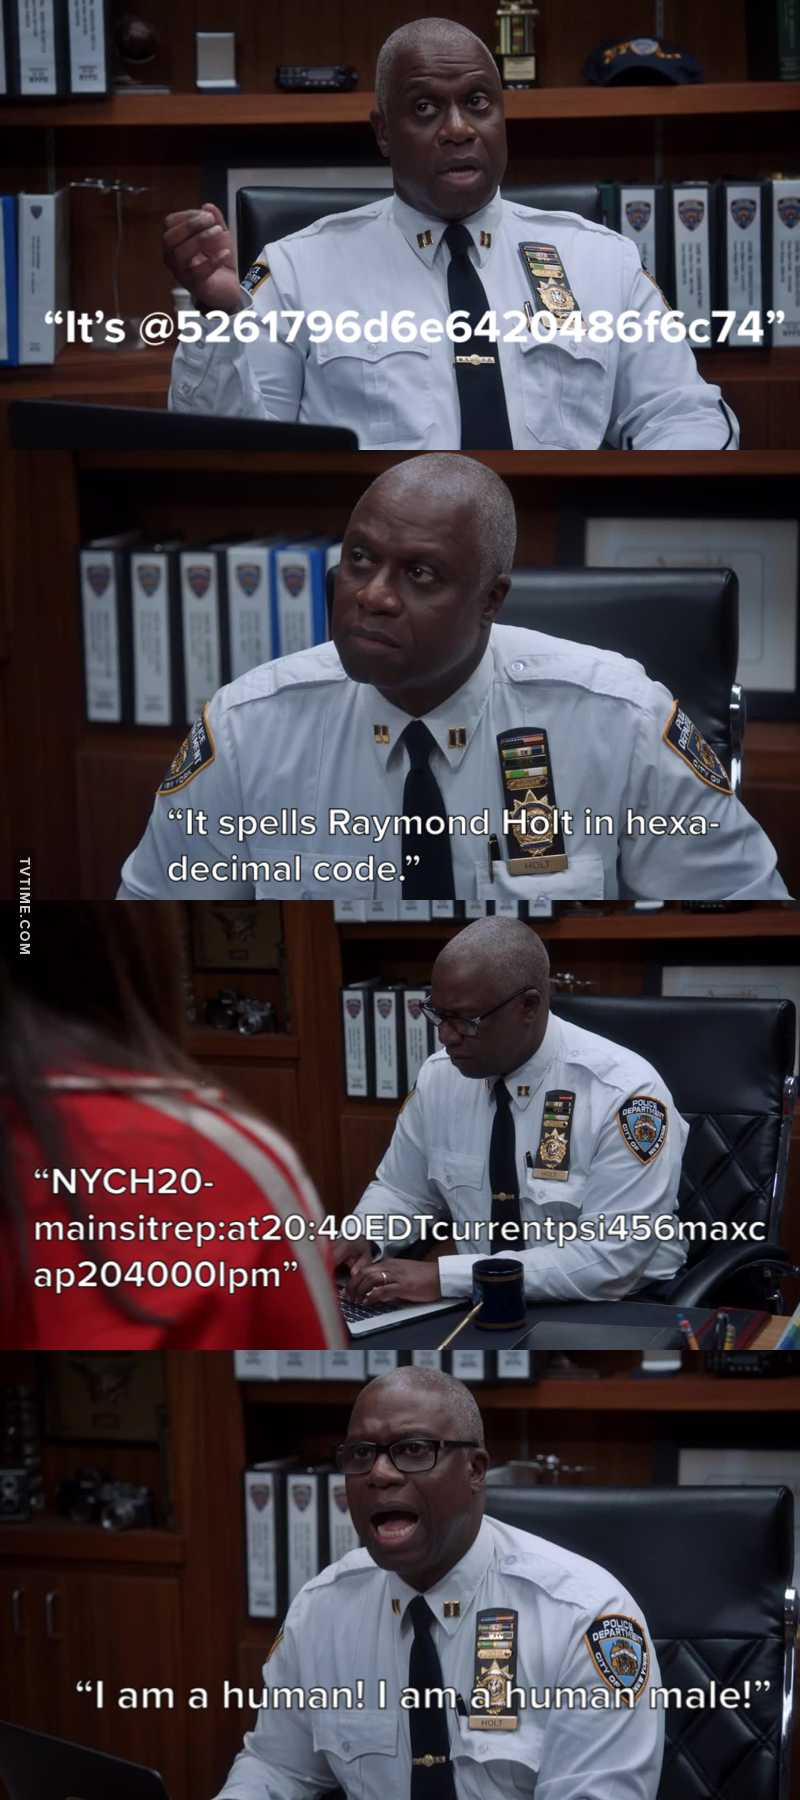 Captain Holt trying to tweet had me in TEARS! 😂 So many numbers!